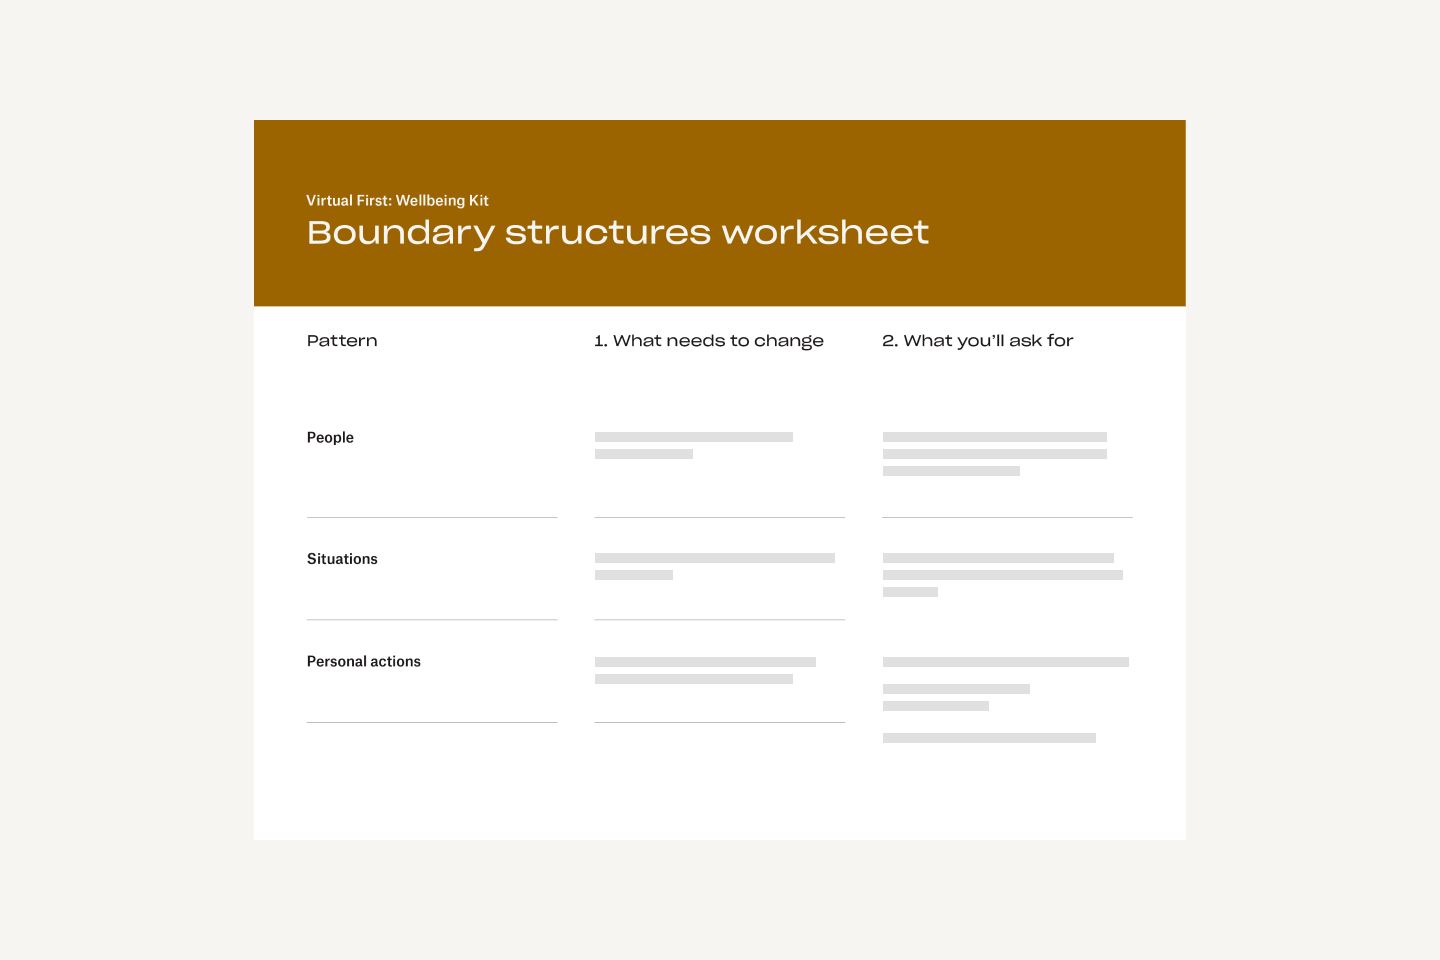 Boundary structures worksheet